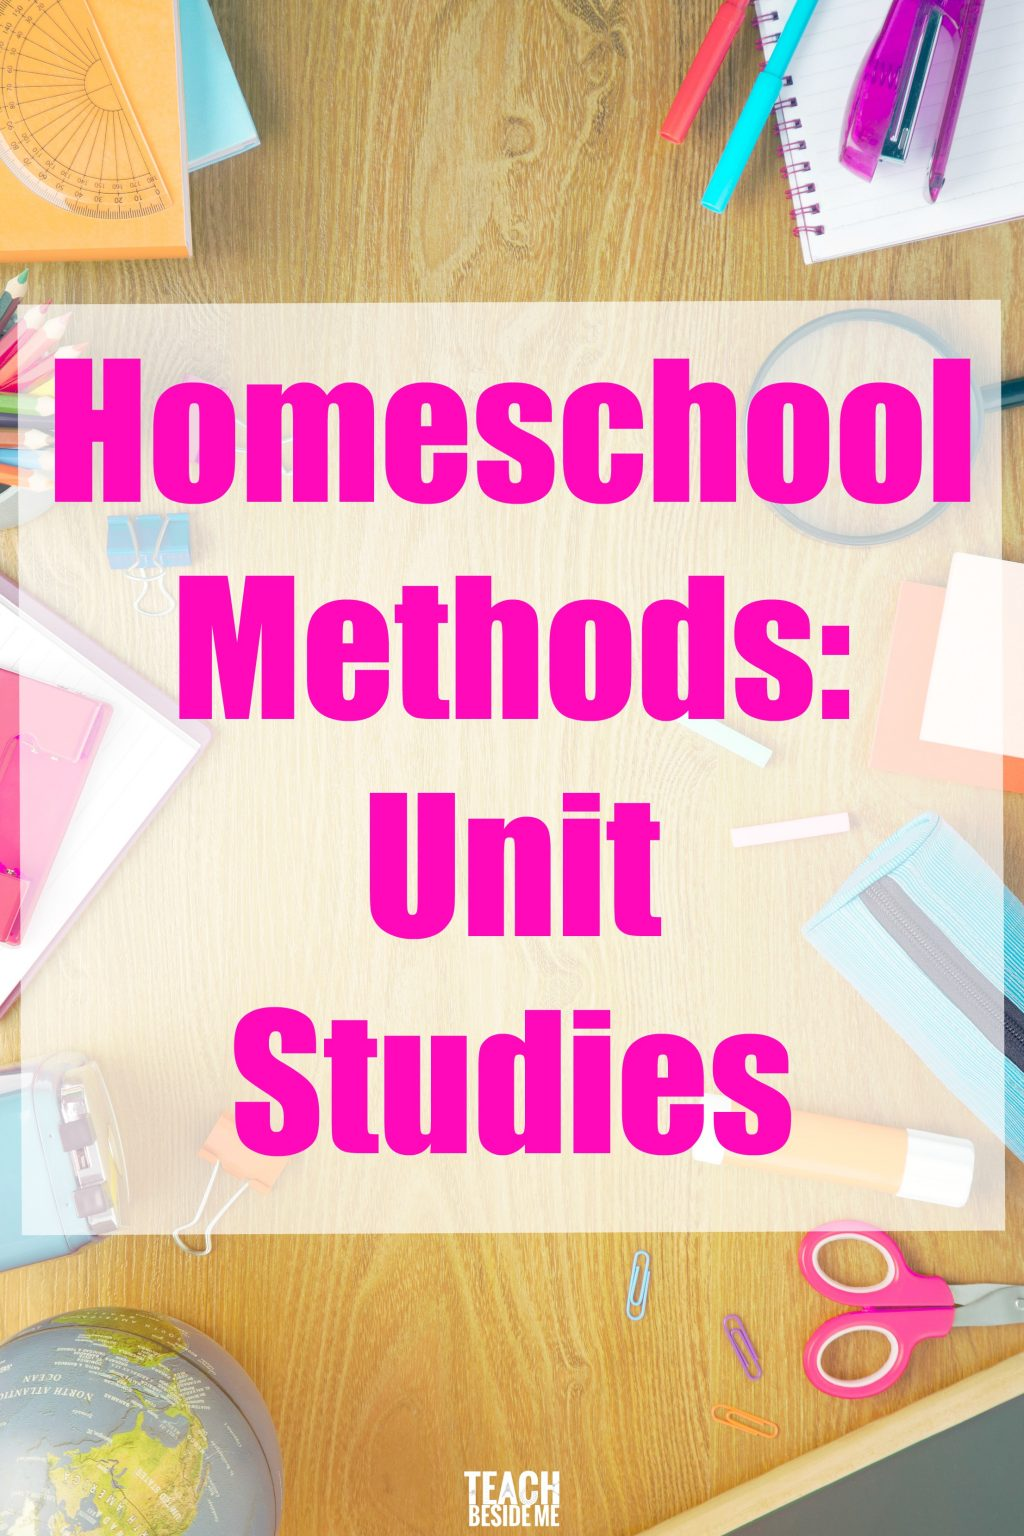 homeschool Methods- Unit Studies